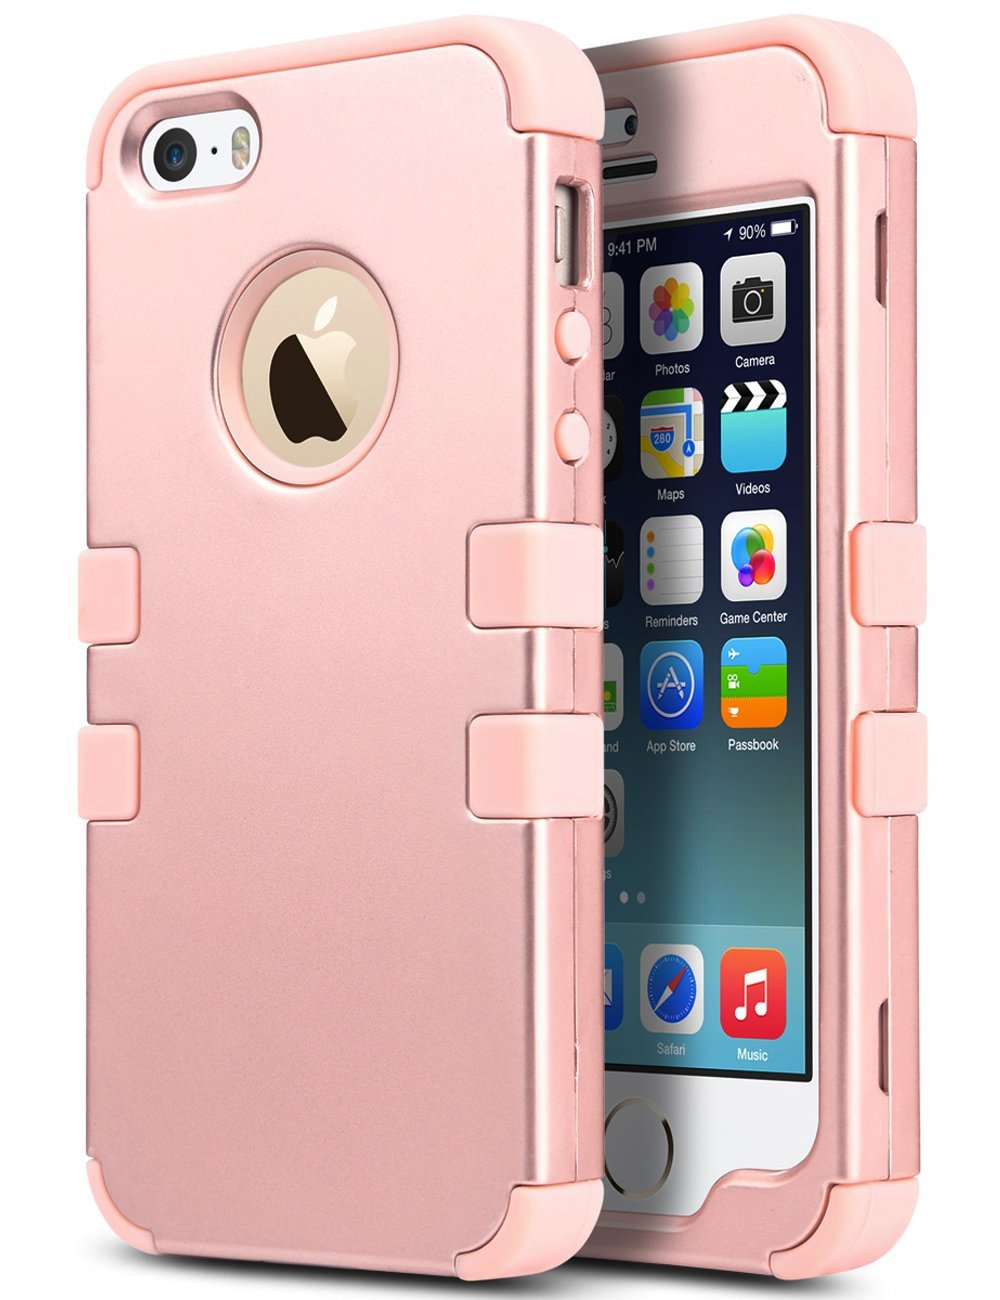 Cheap Gold Iphone 5s Price In India, find Gold Iphone 5s Price In ...